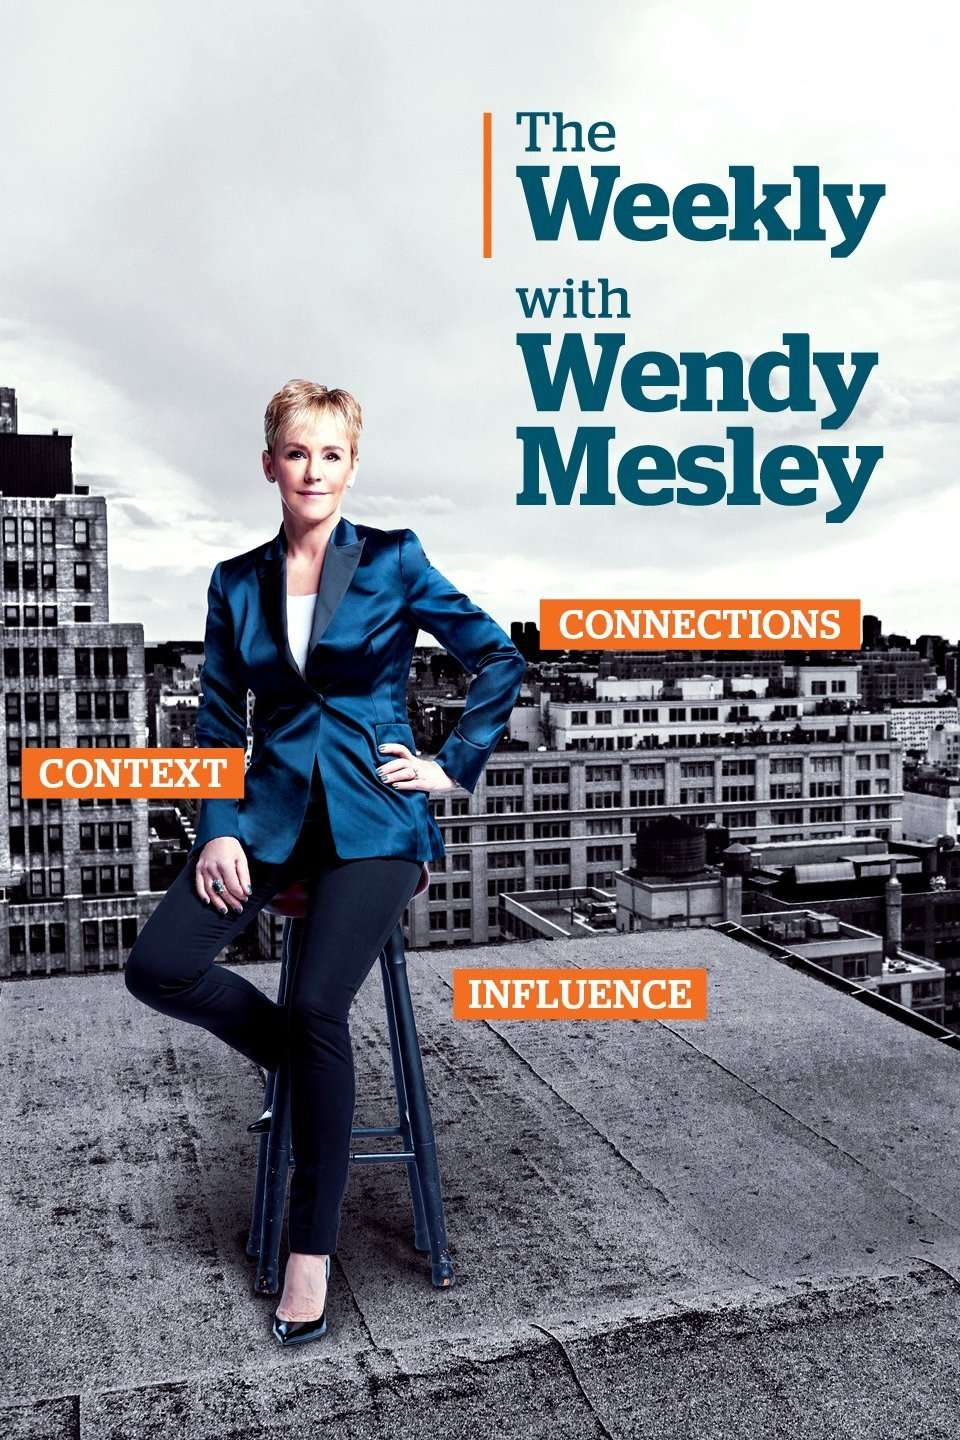 The Weekly with Wendy Mesley